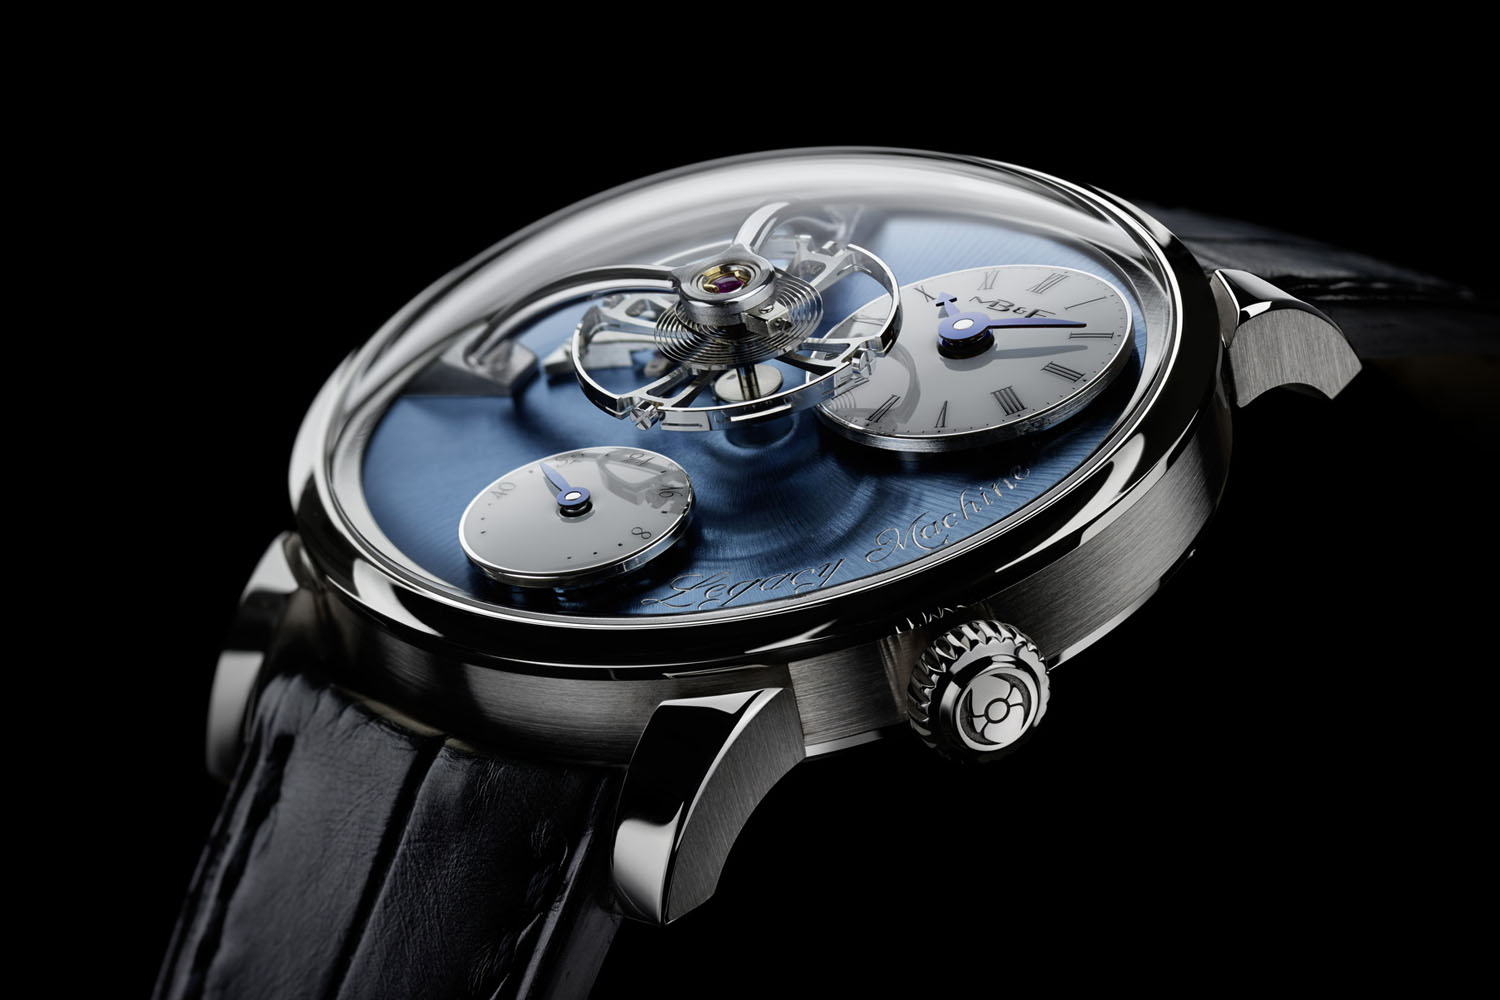 Pre-SIHH 2016 – MB&F Legacy Machine LM101 now in platinum with a blue dial (specs & price)